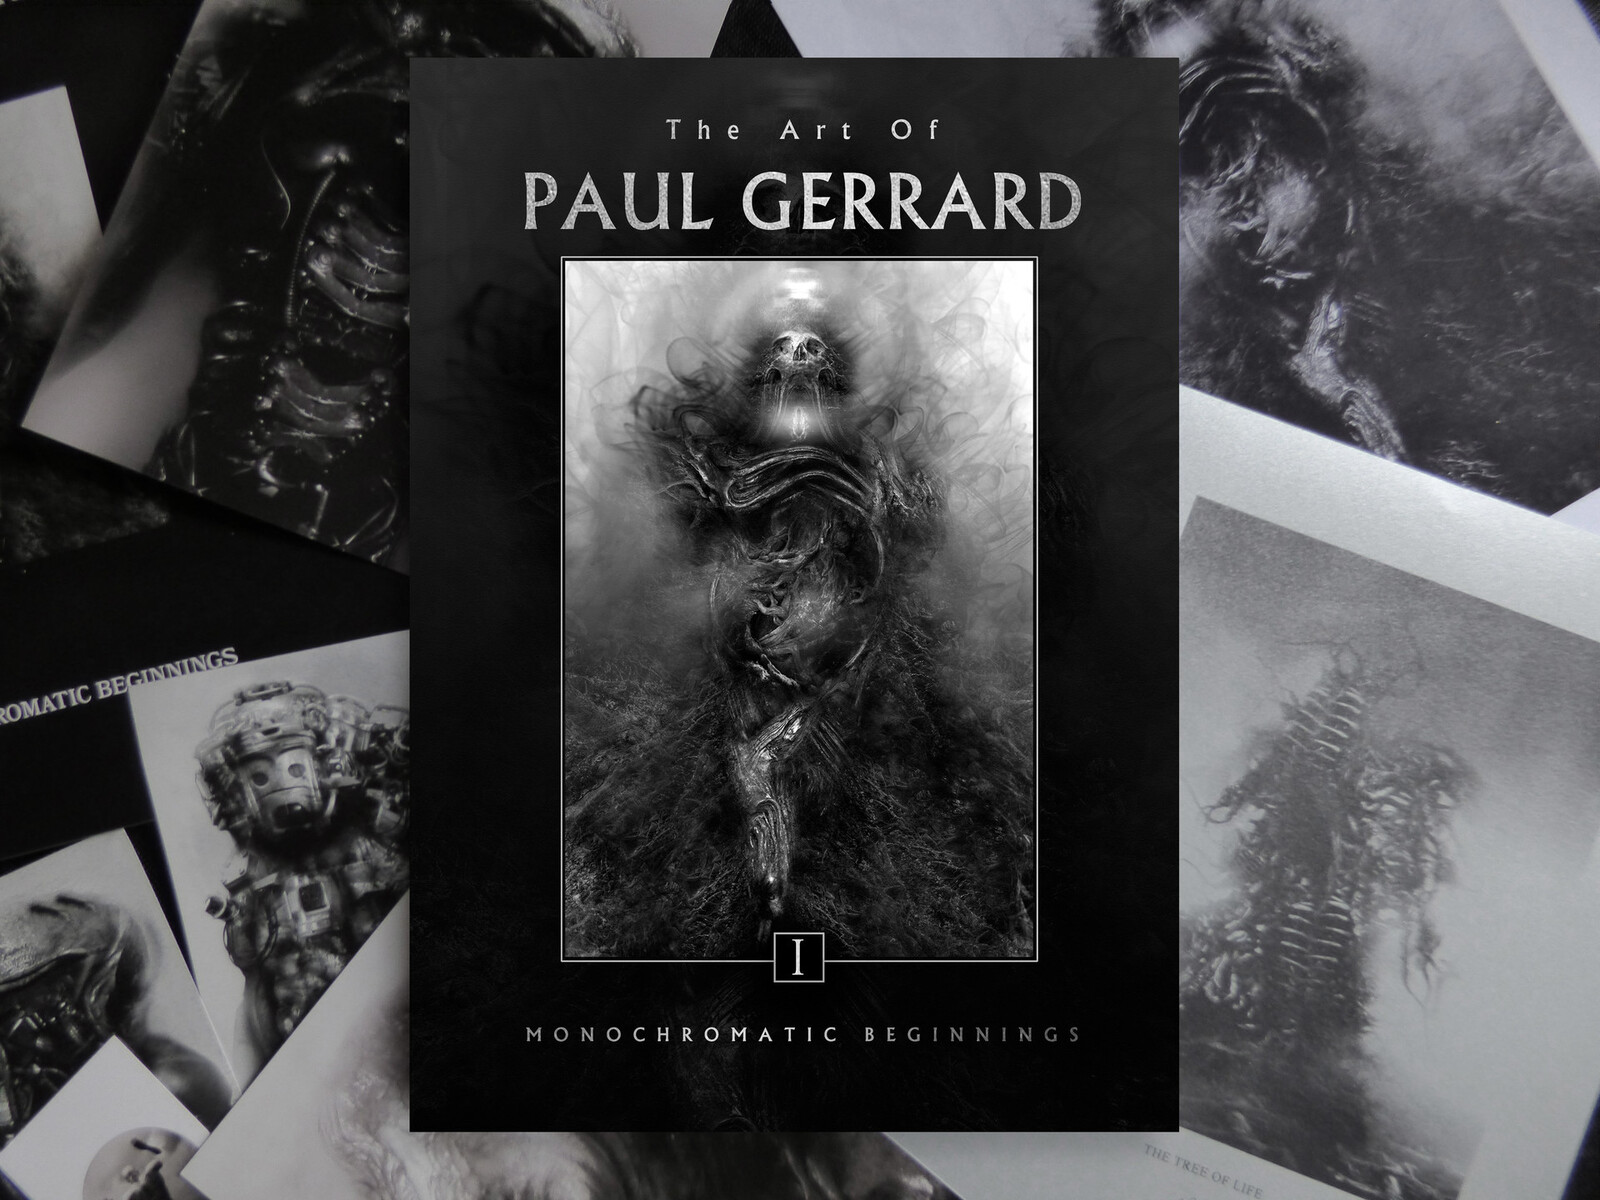 BOOKS : ART OF GERRARD I